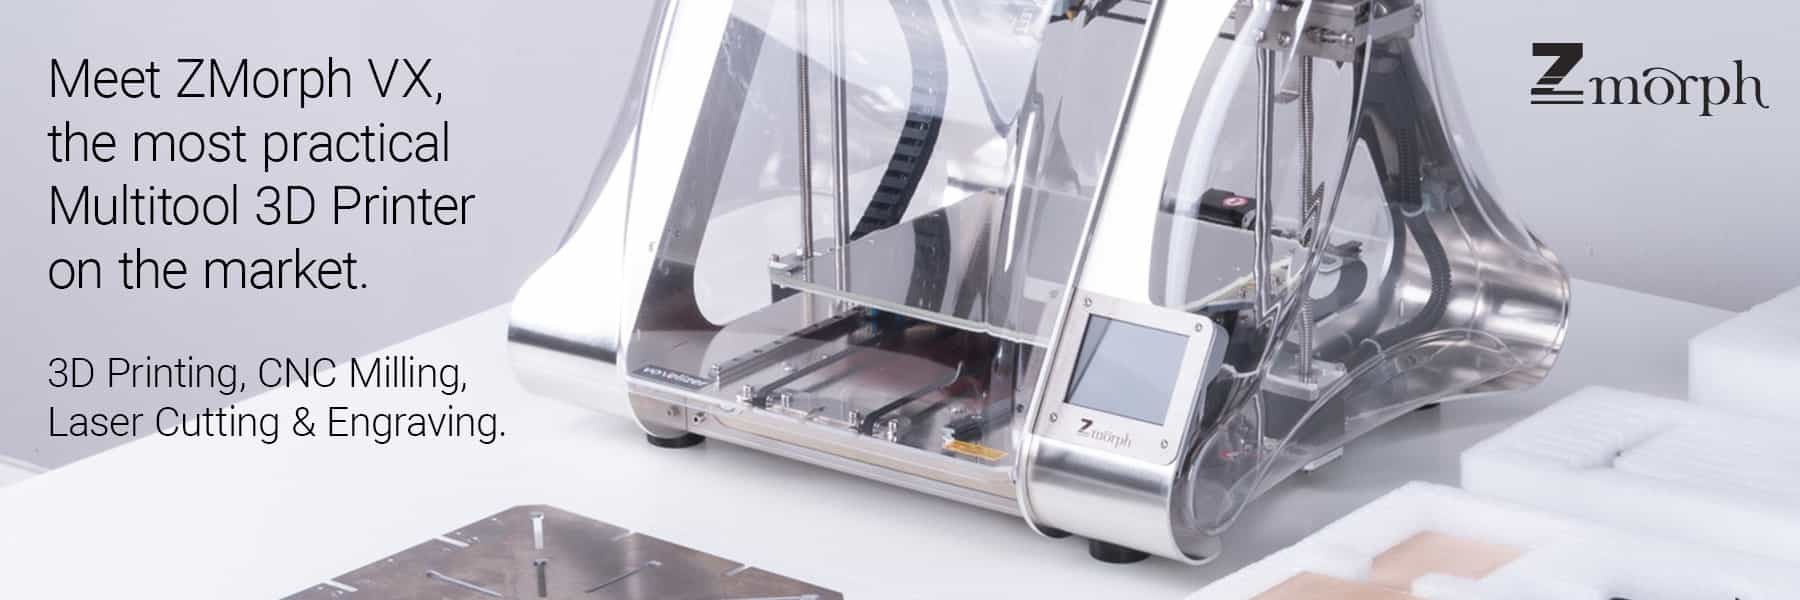 zmorph multitool 3d printer